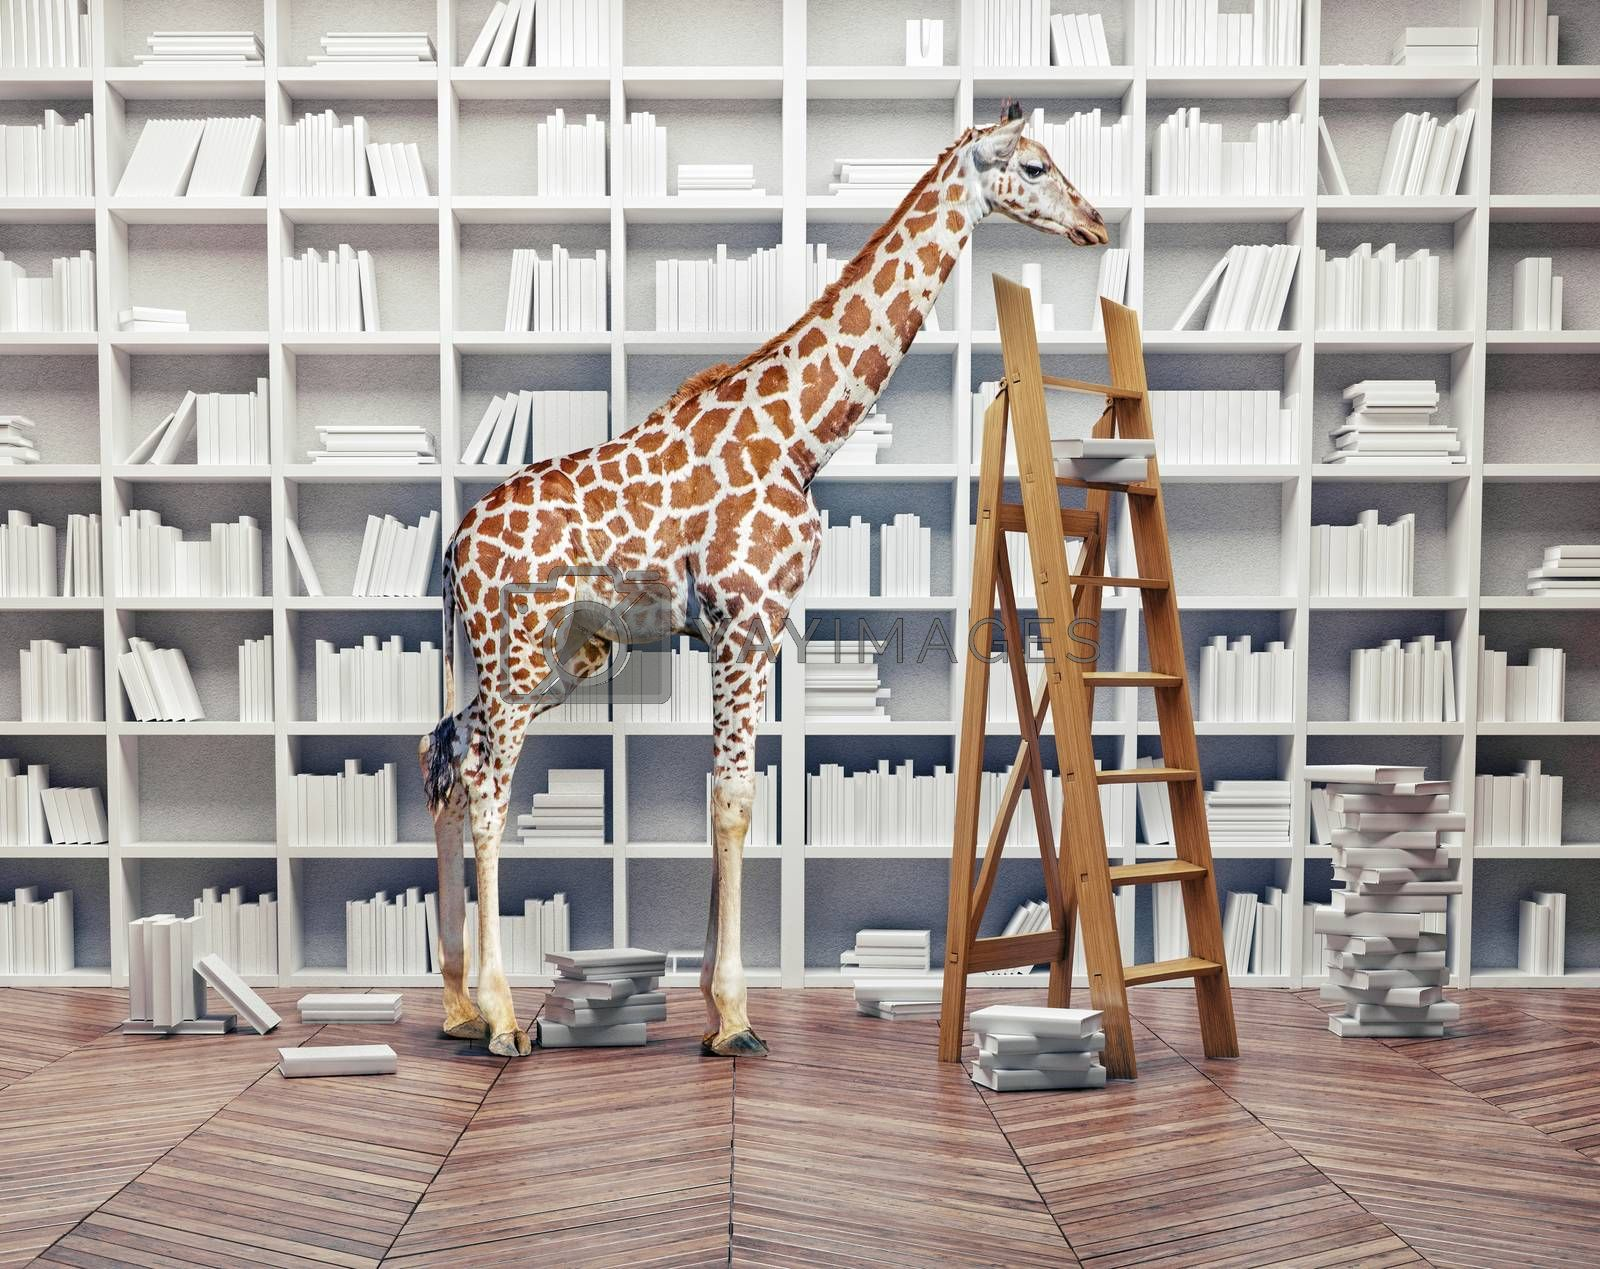 an giraffe baby  in the room with book shelves. Creative concept